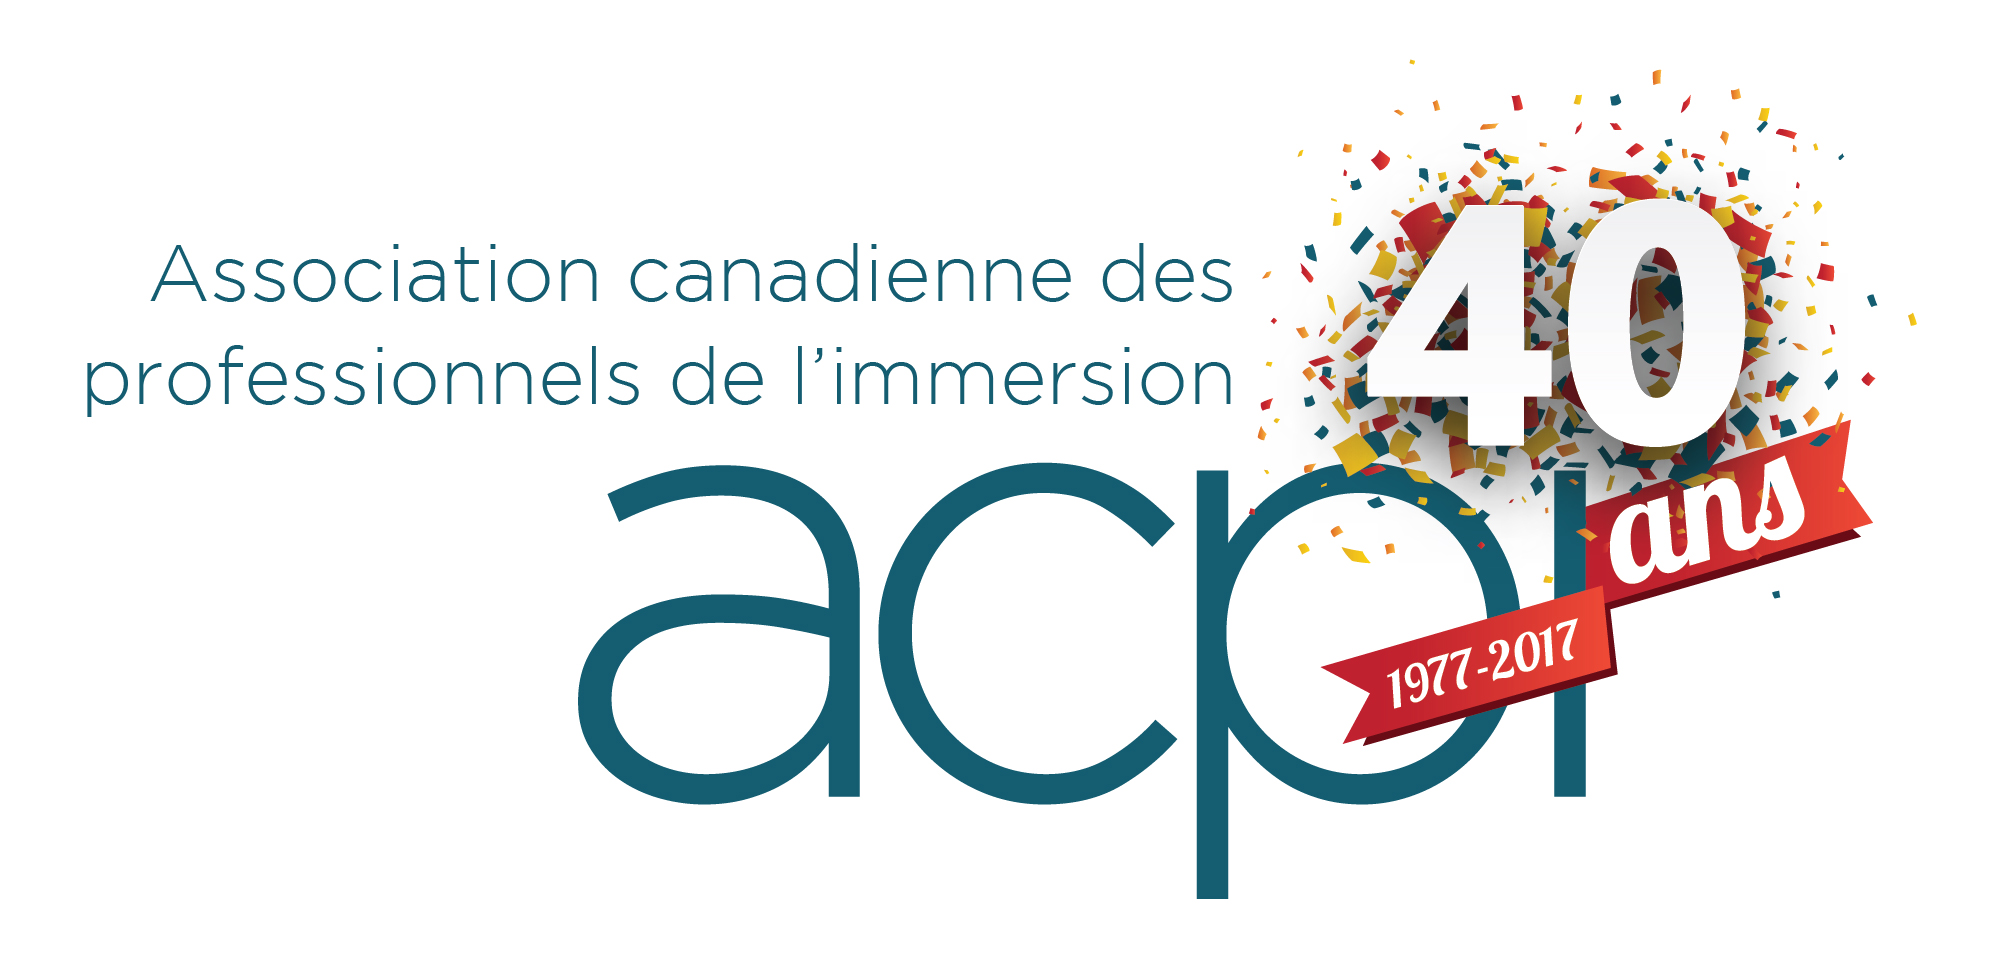 Consultation pancanadienne de l'ACPI : les professionnels de l'immersion se dévoilent!